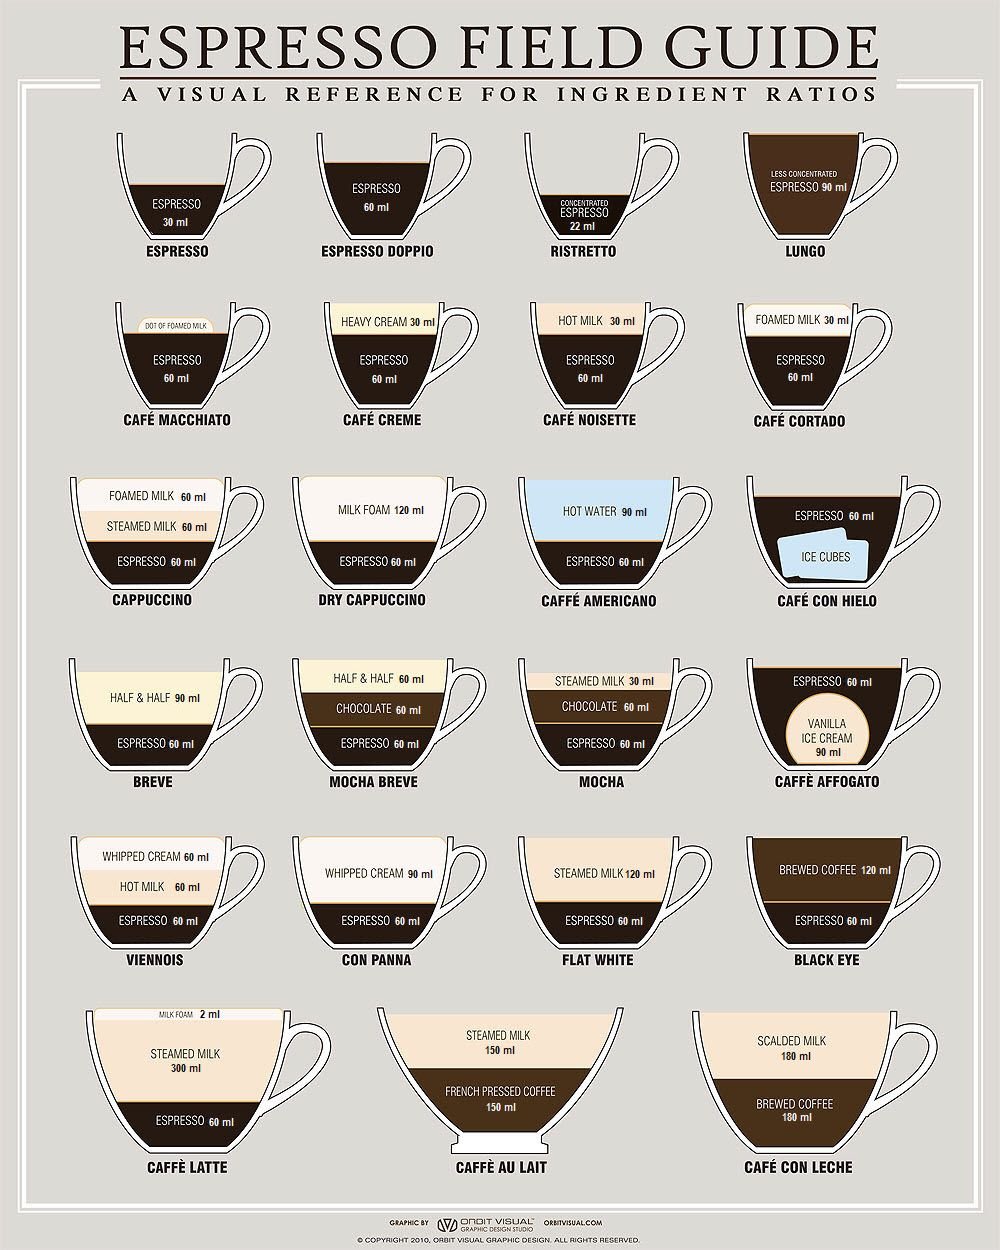 Espresso Field Guide (via Design You Trust)